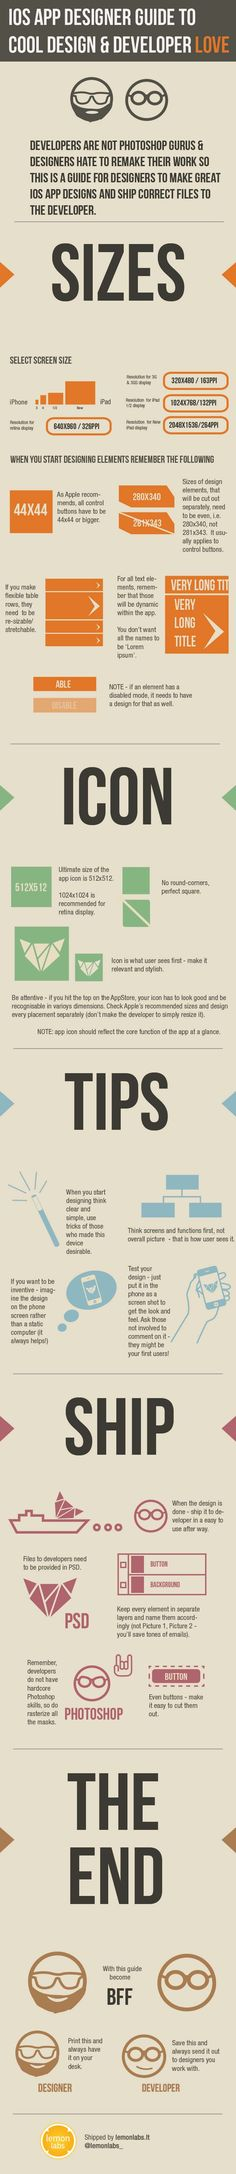 Tips of Mobile User Interface